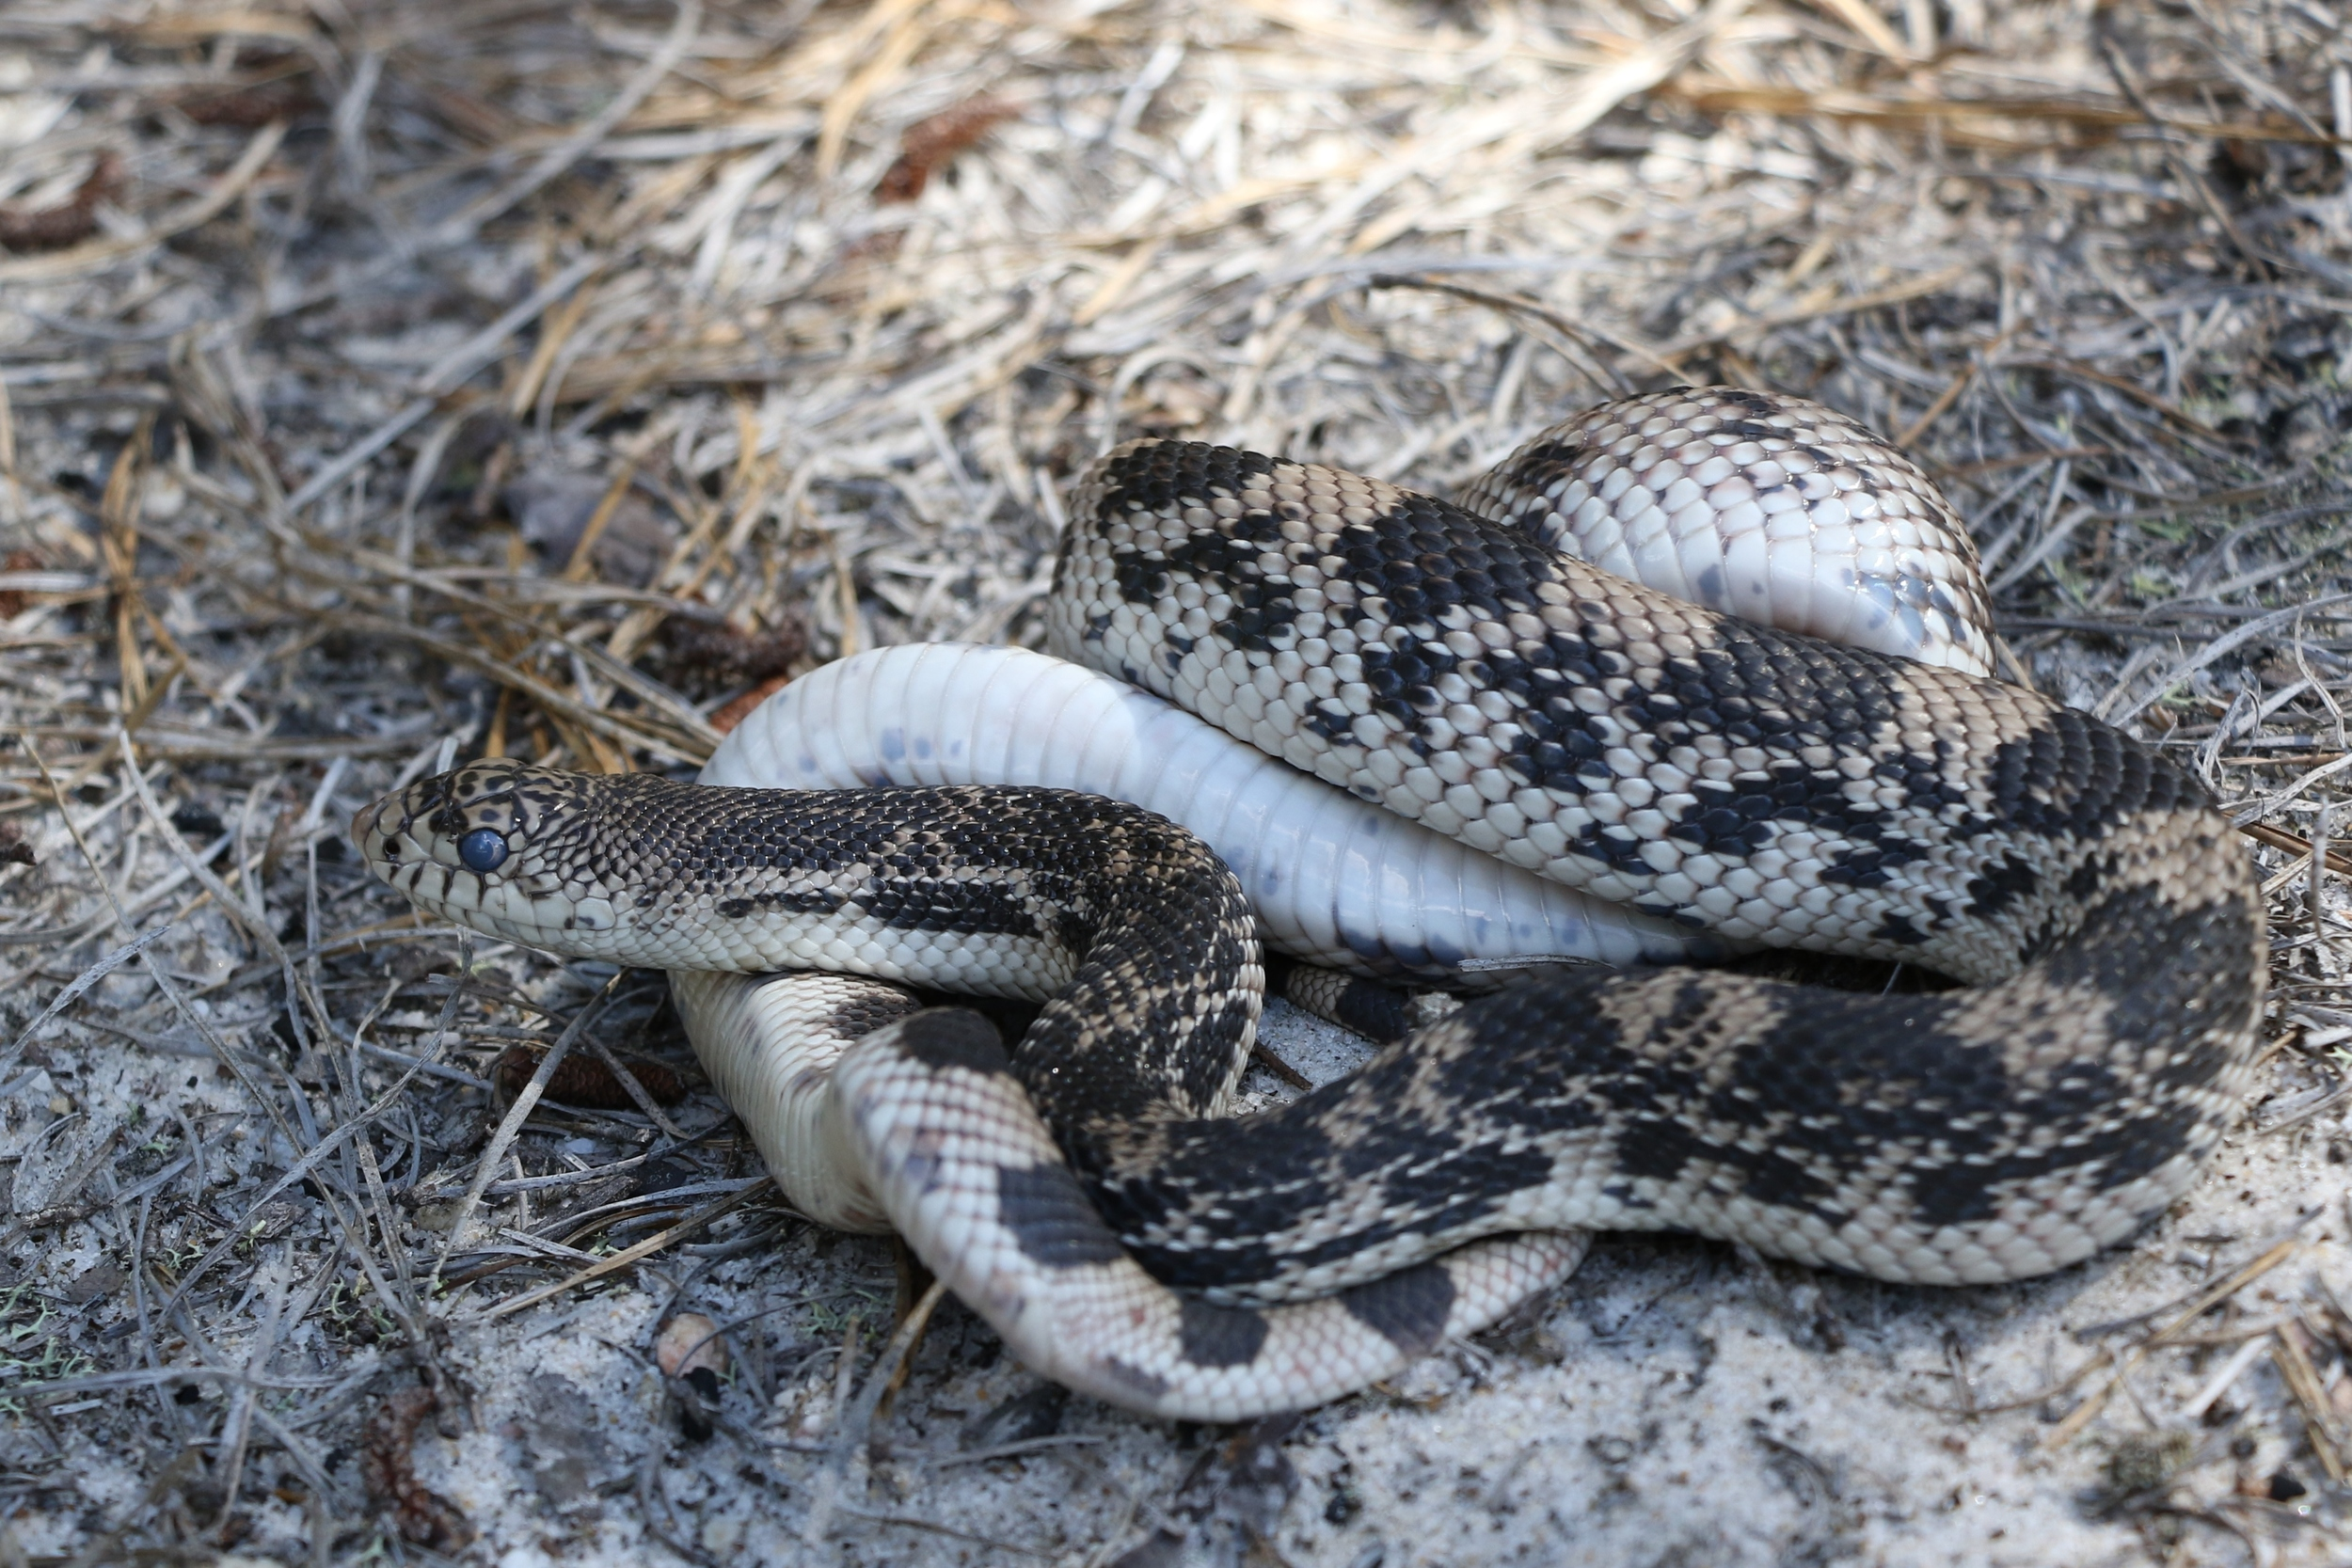 Northern Pinesnake in shed